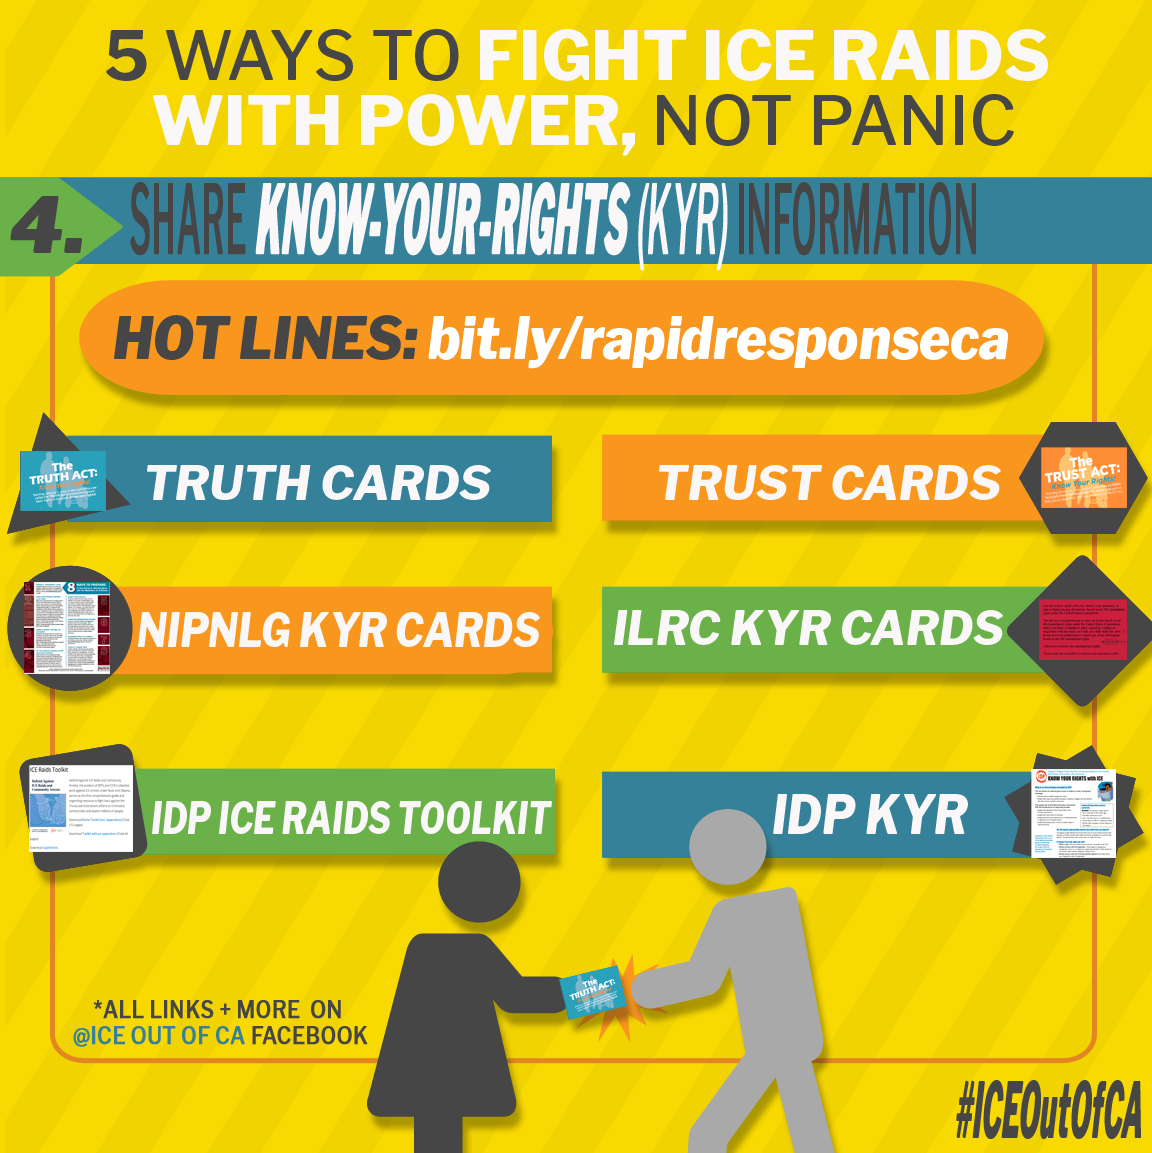 4. Share Know Your Rights Information